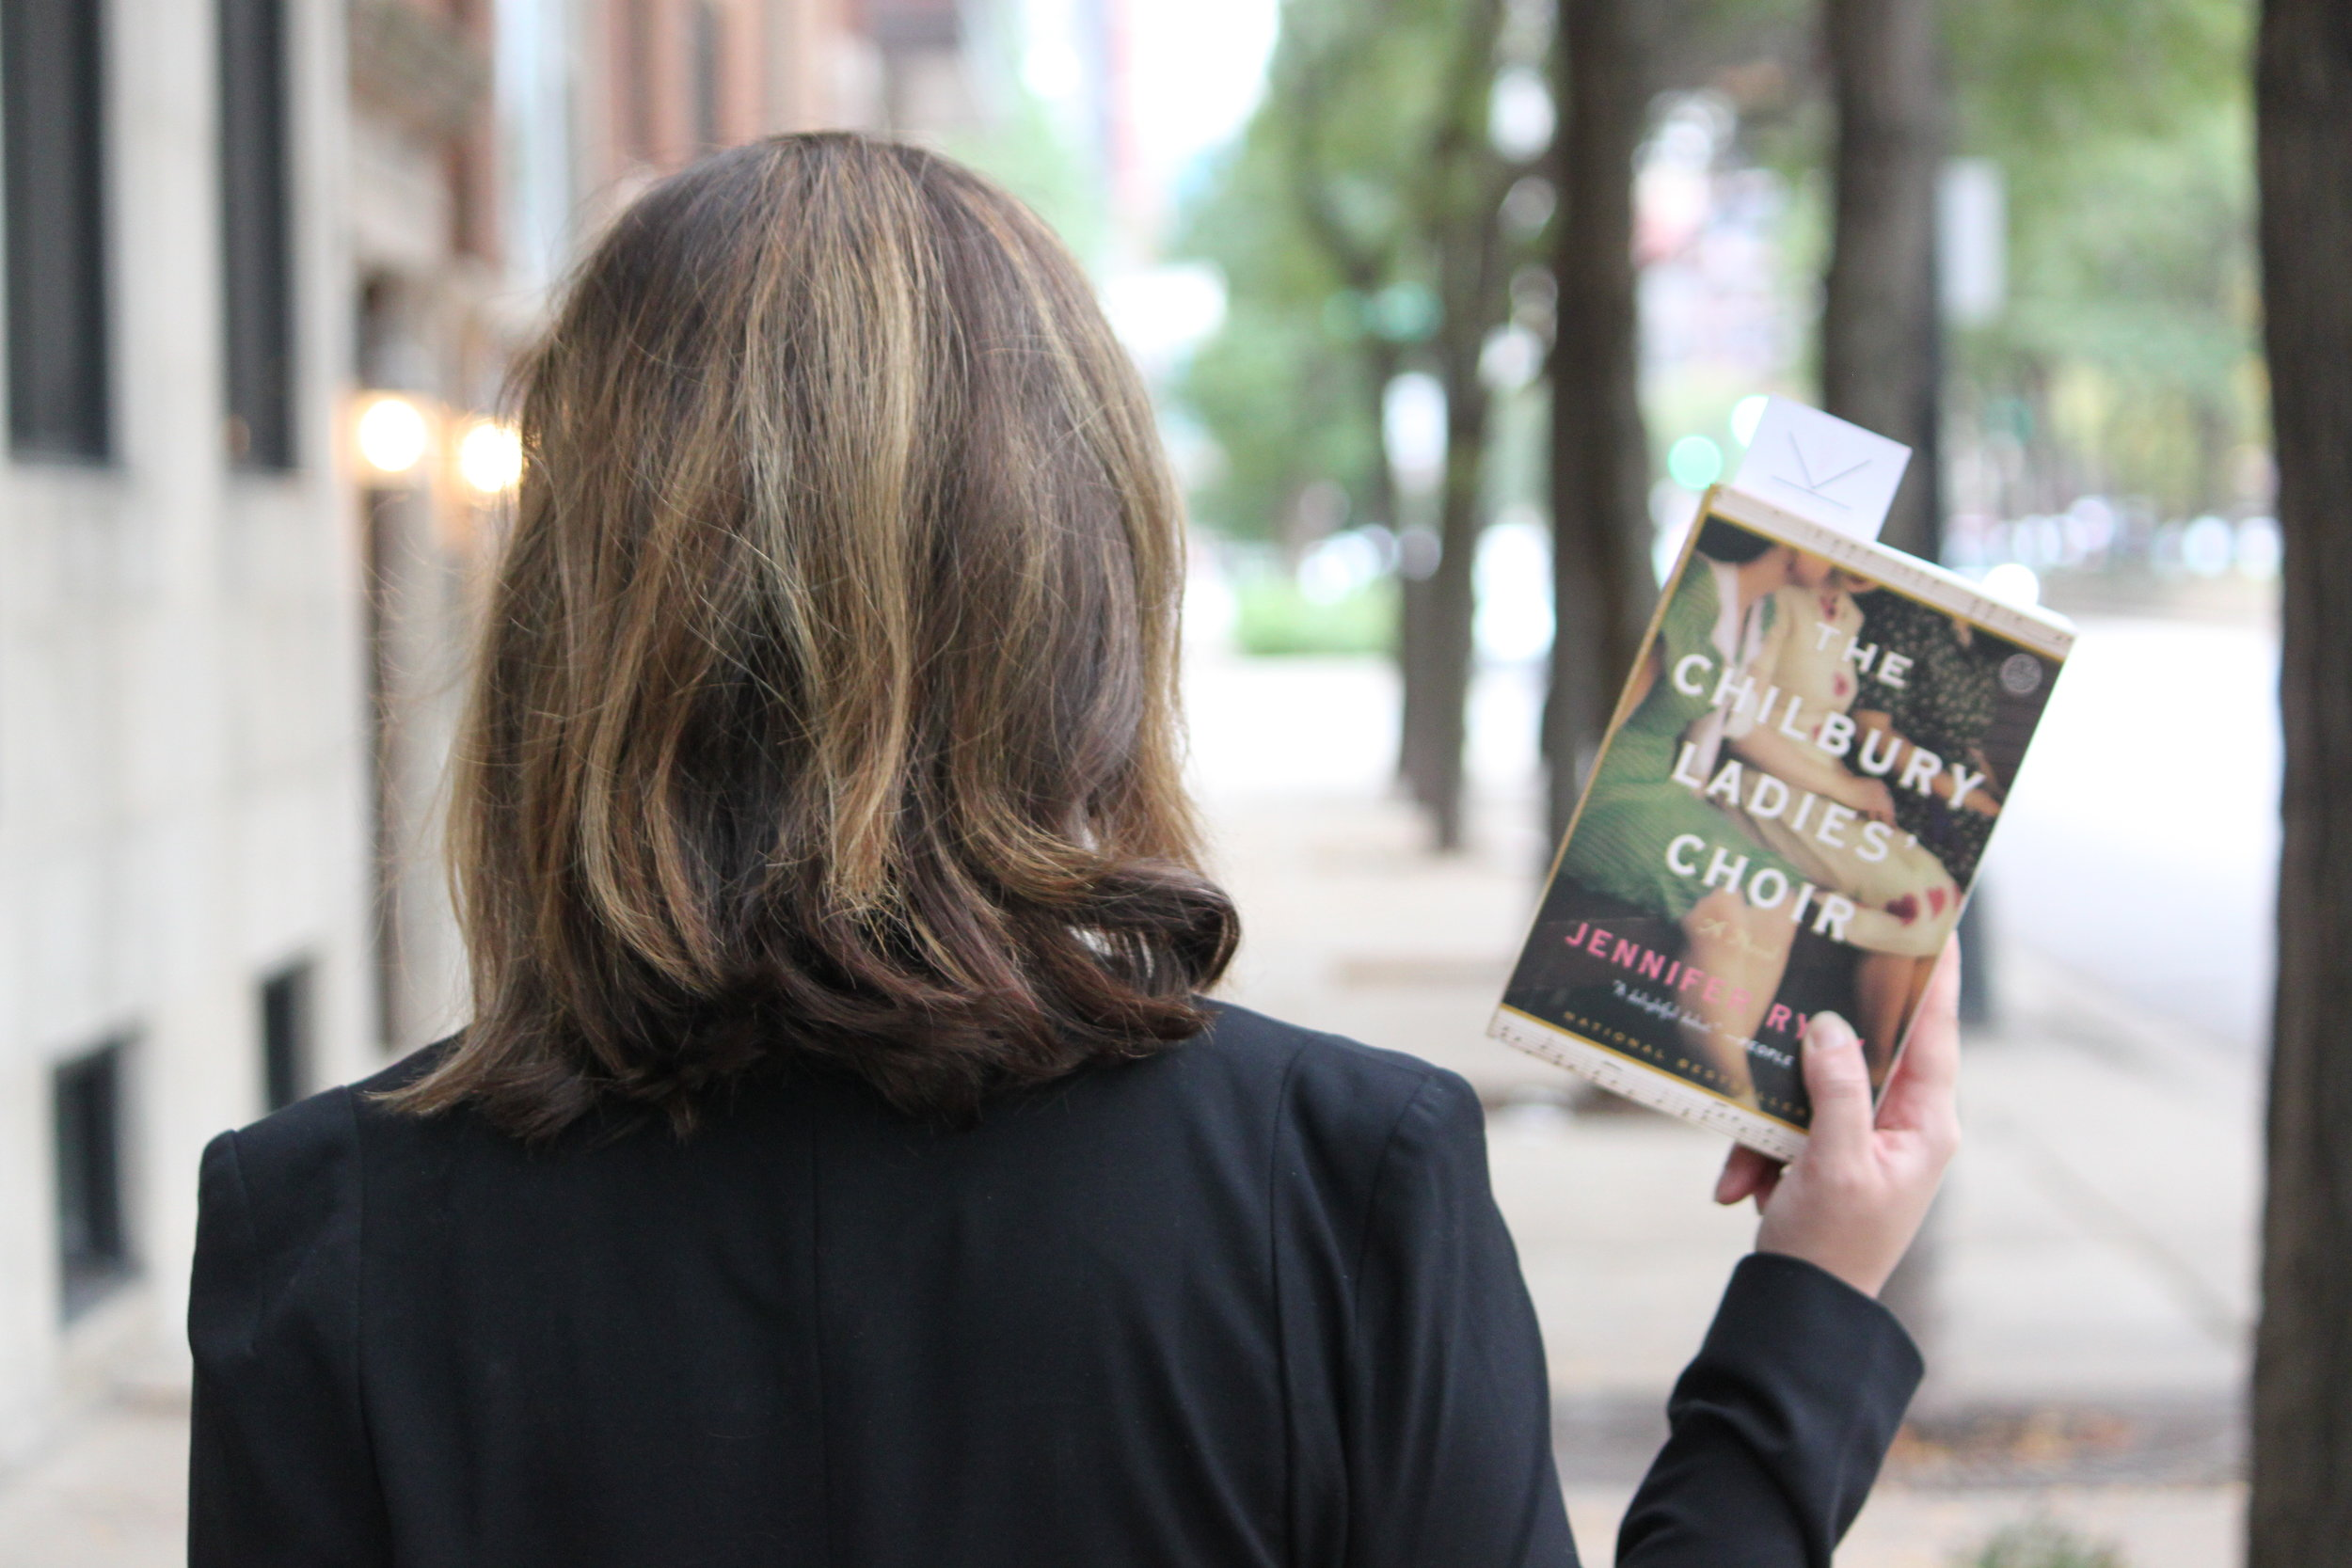 Reading The Chilbury Ladies' Choir by Jennifer Ryan in Chicago, IL